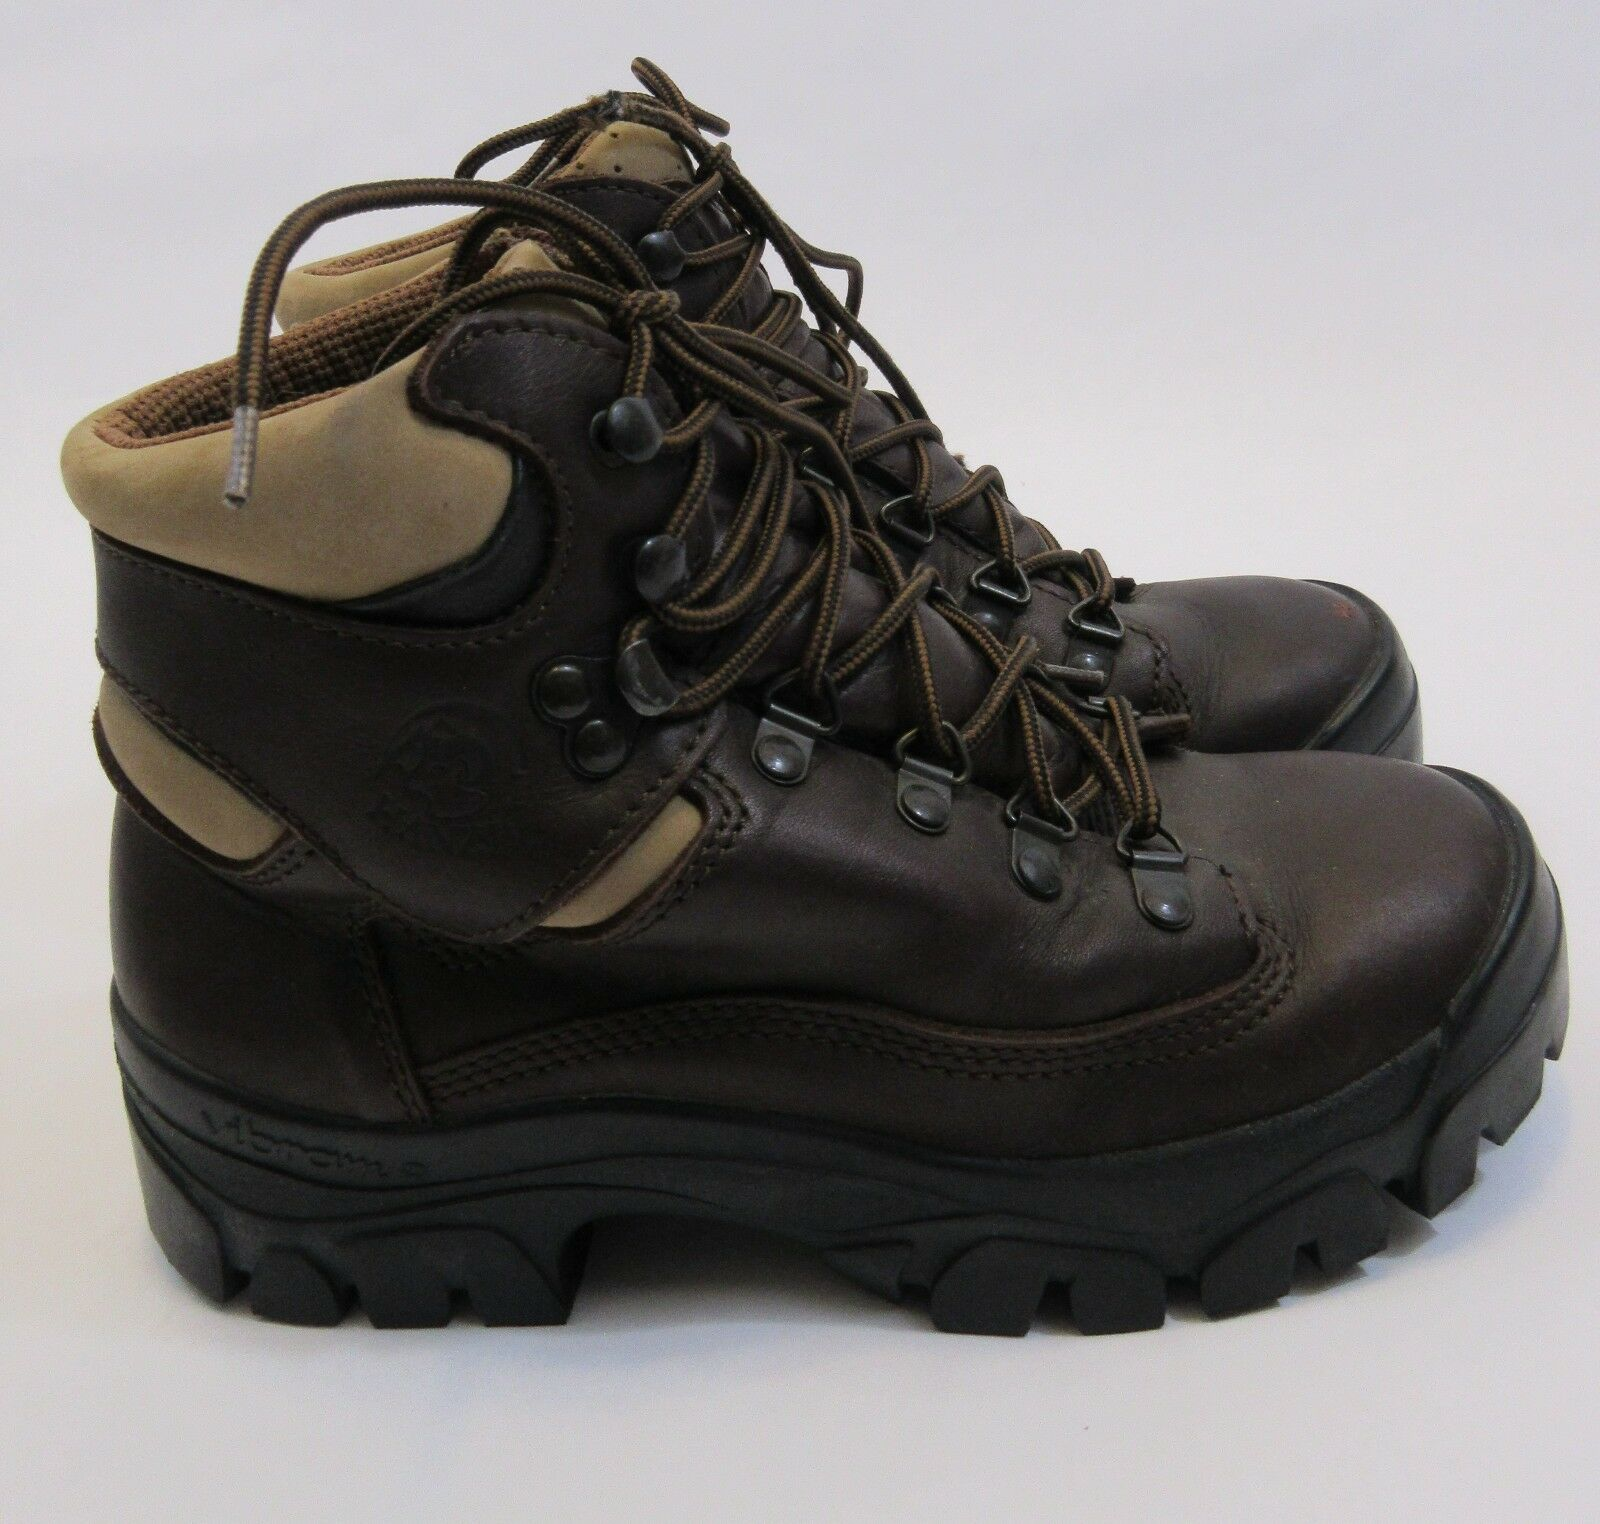 Wiggy's Hanzel Brown Leather Hiking Outdoor Boots Vibram Size 36 US Size 5.5/6